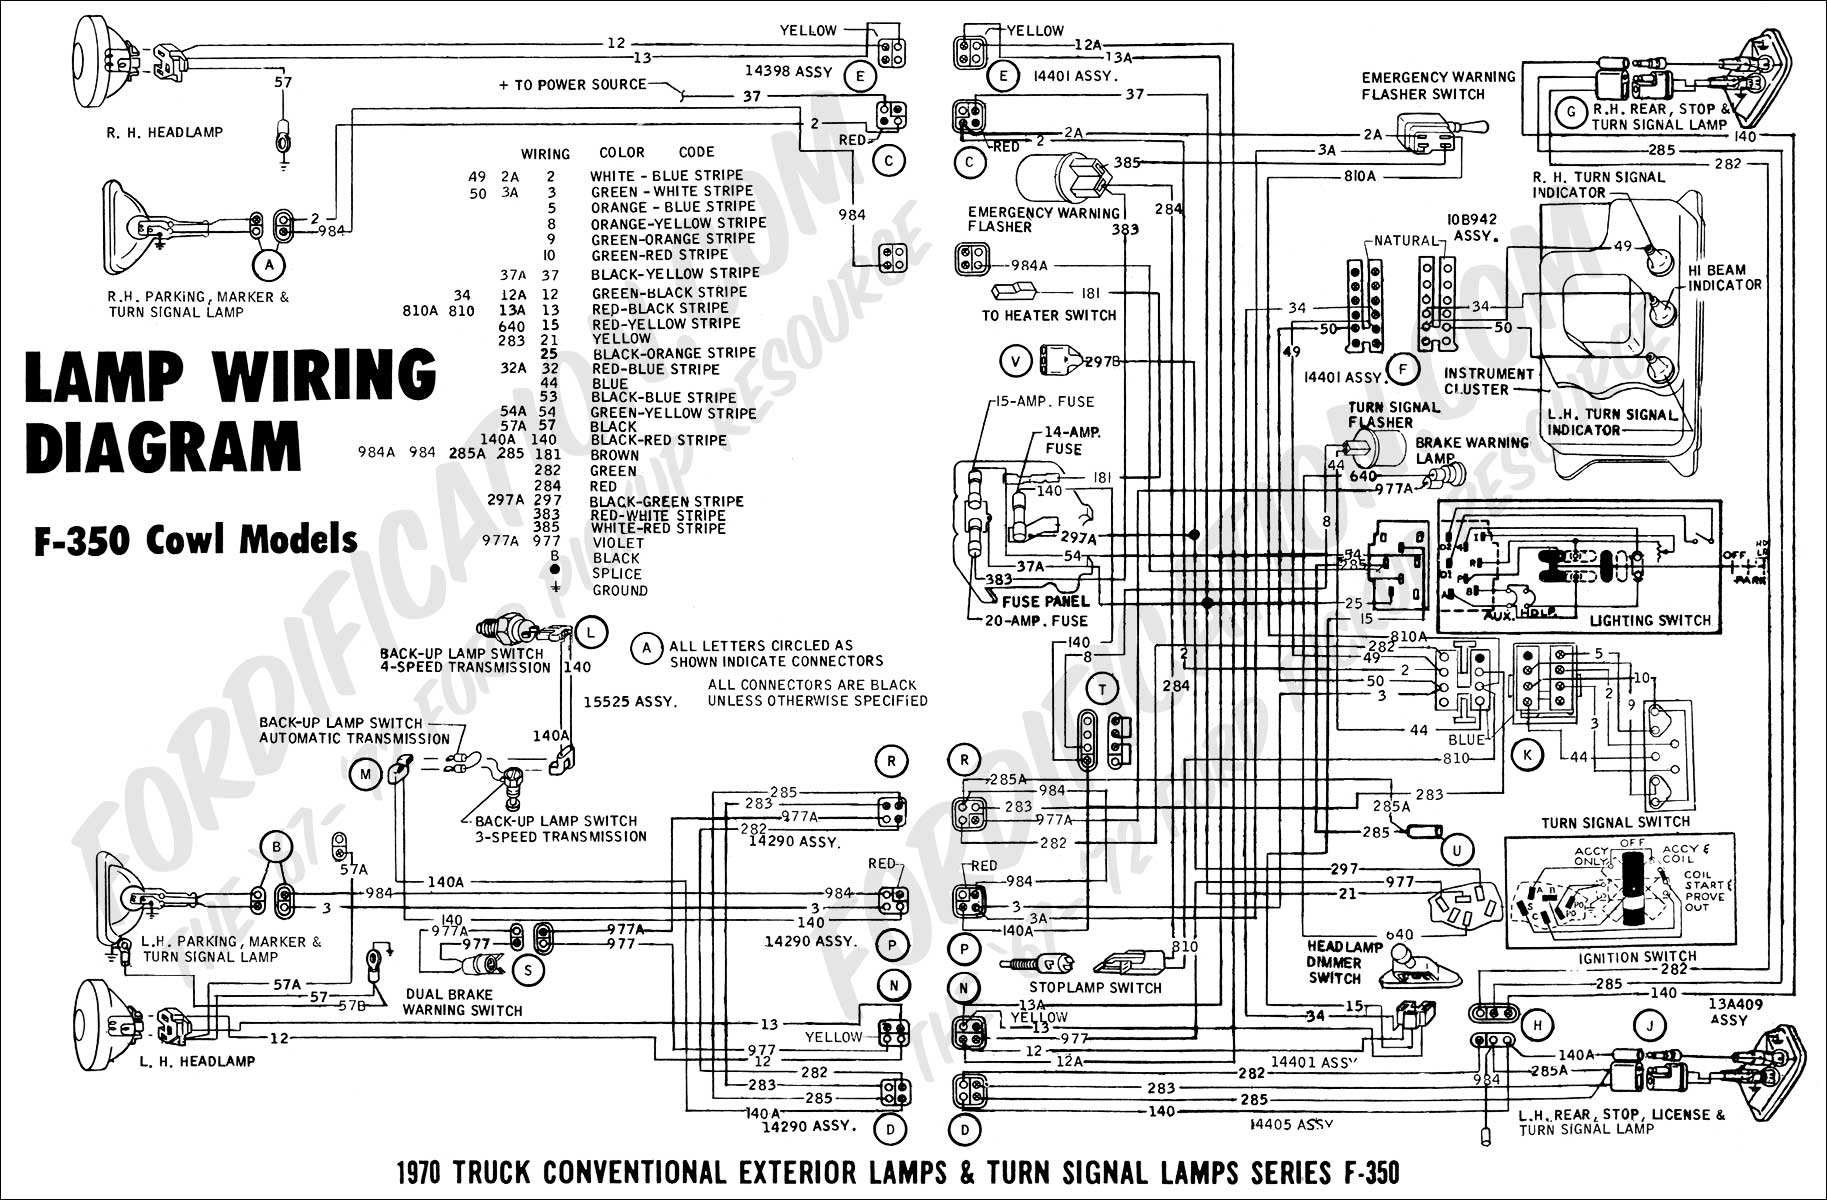 F350 Wiring Diagram - Wiring Diagrams Hubs - Ford Super Duty Trailer Wiring Diagram